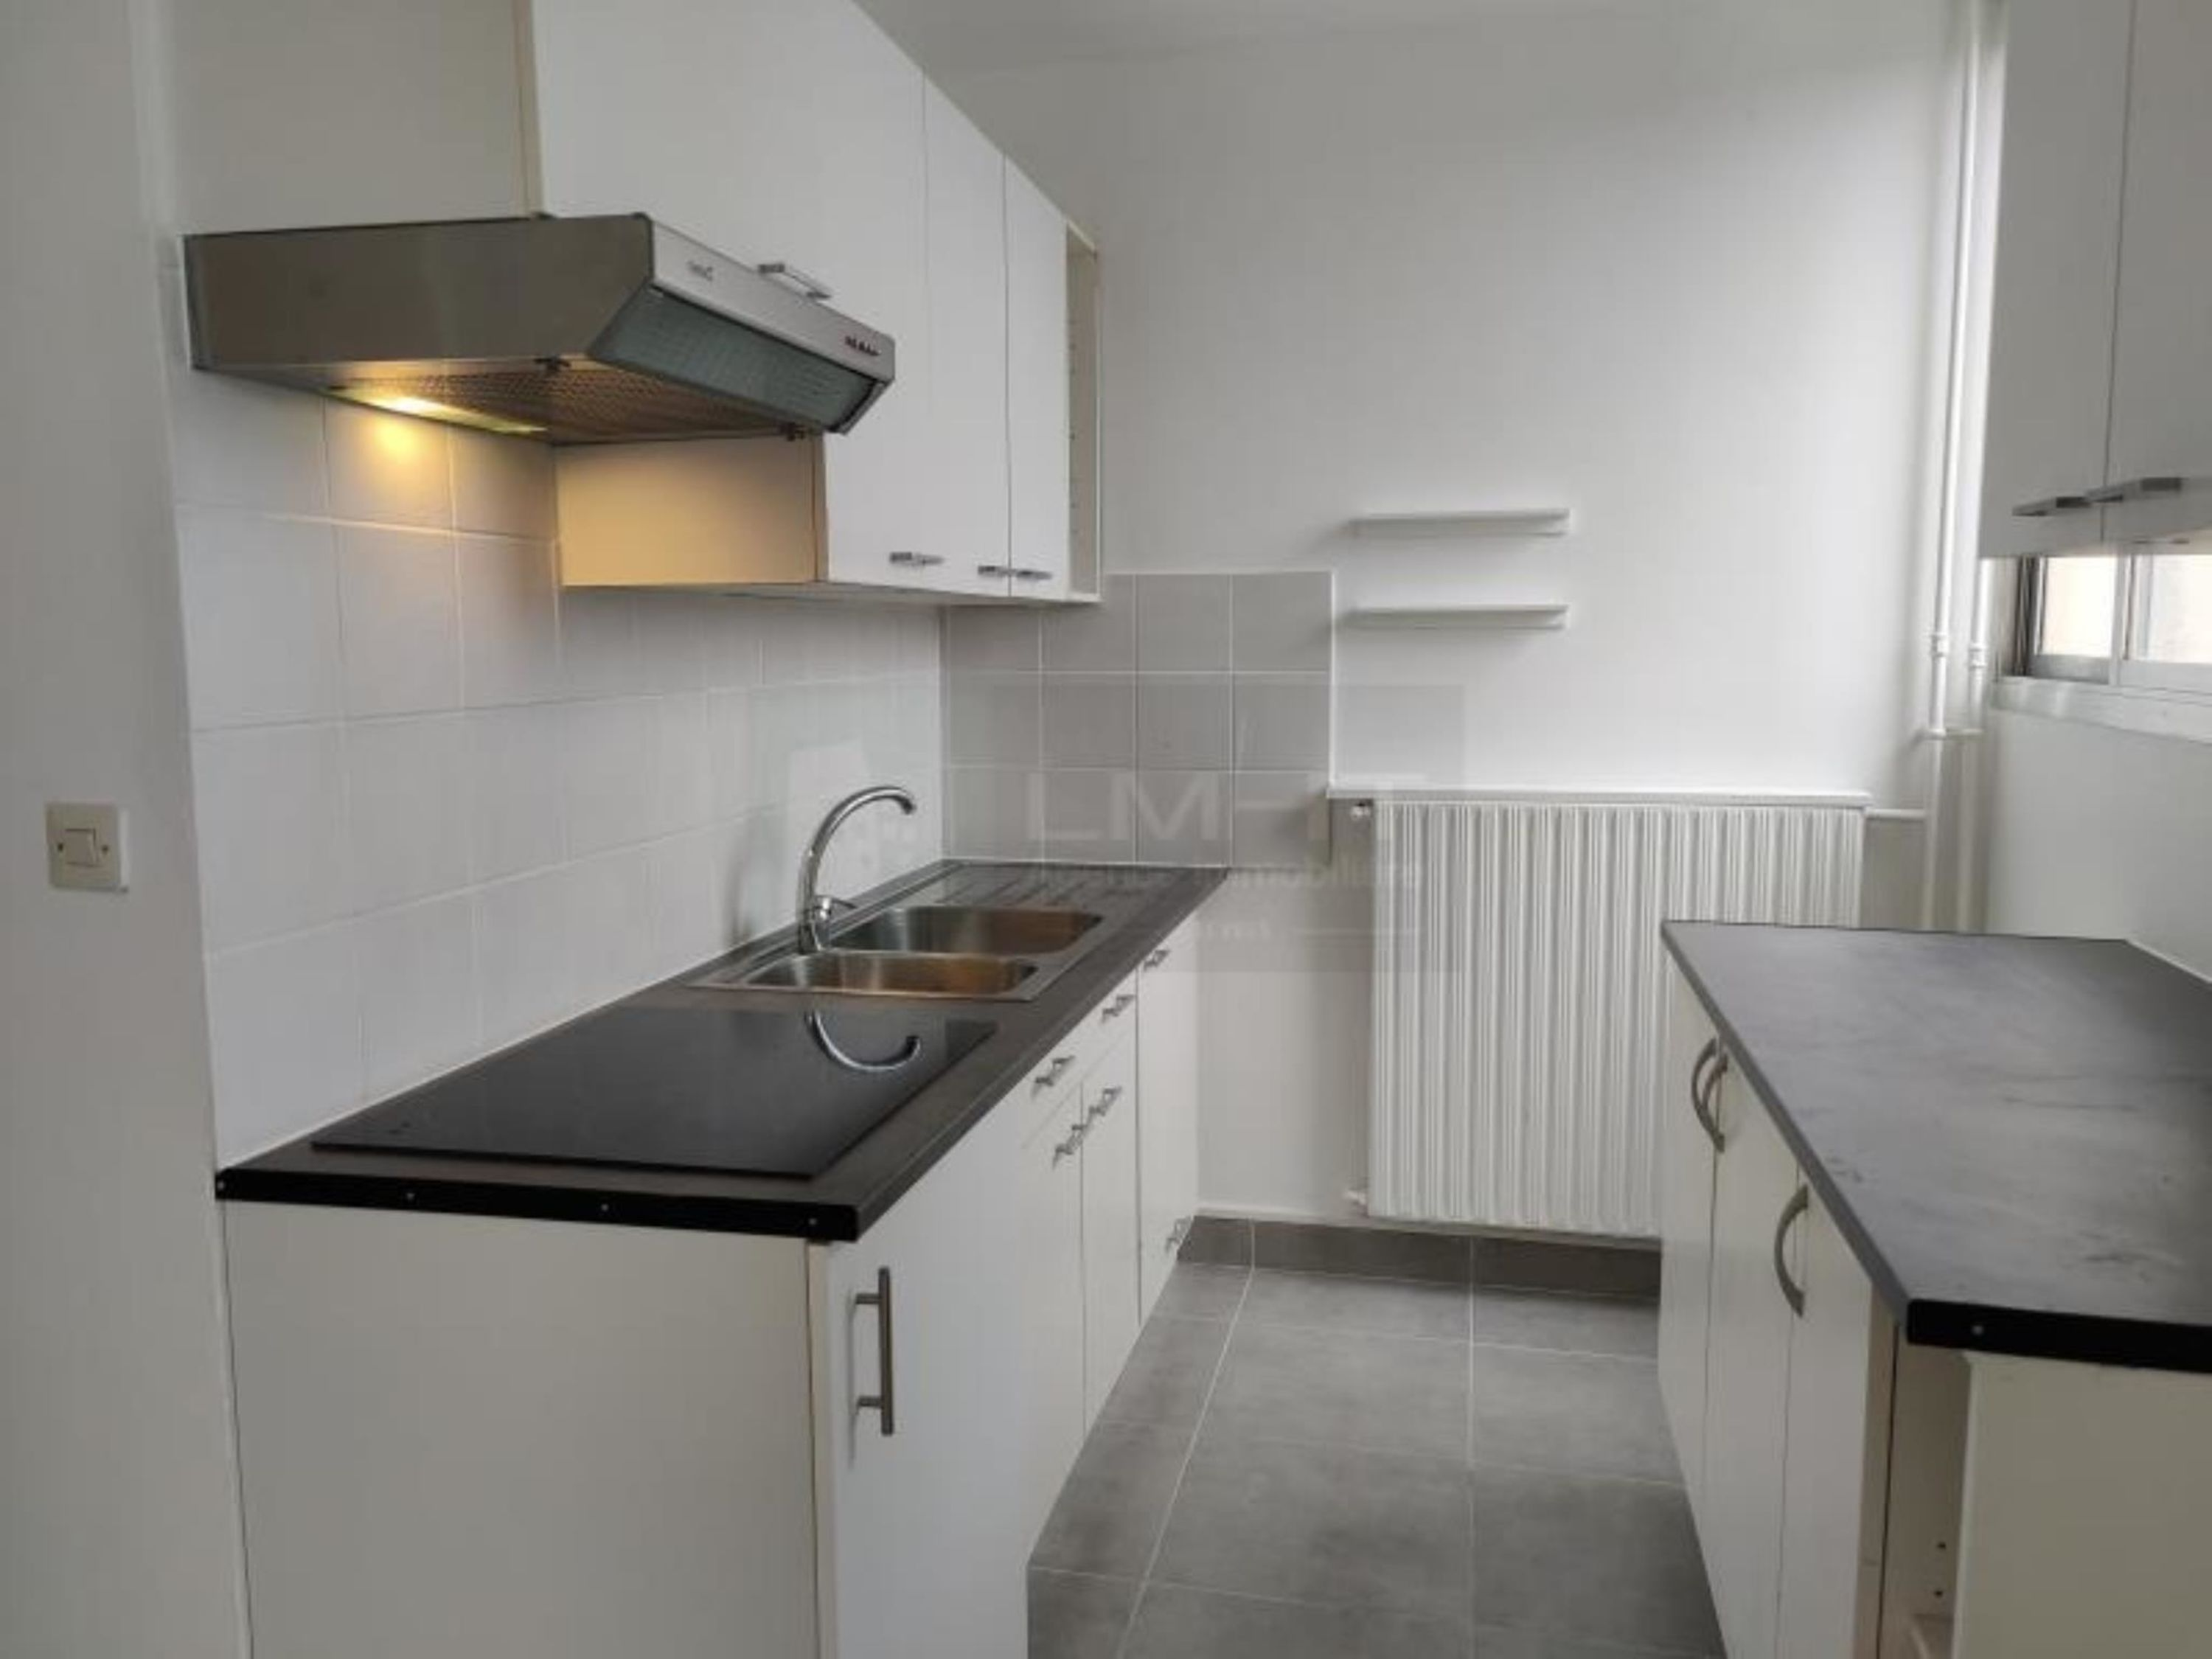 agence immobilière sevres 92 le chesnay 78 achat vente location appartement maison immobilier LMHT ANF GSPELXCY